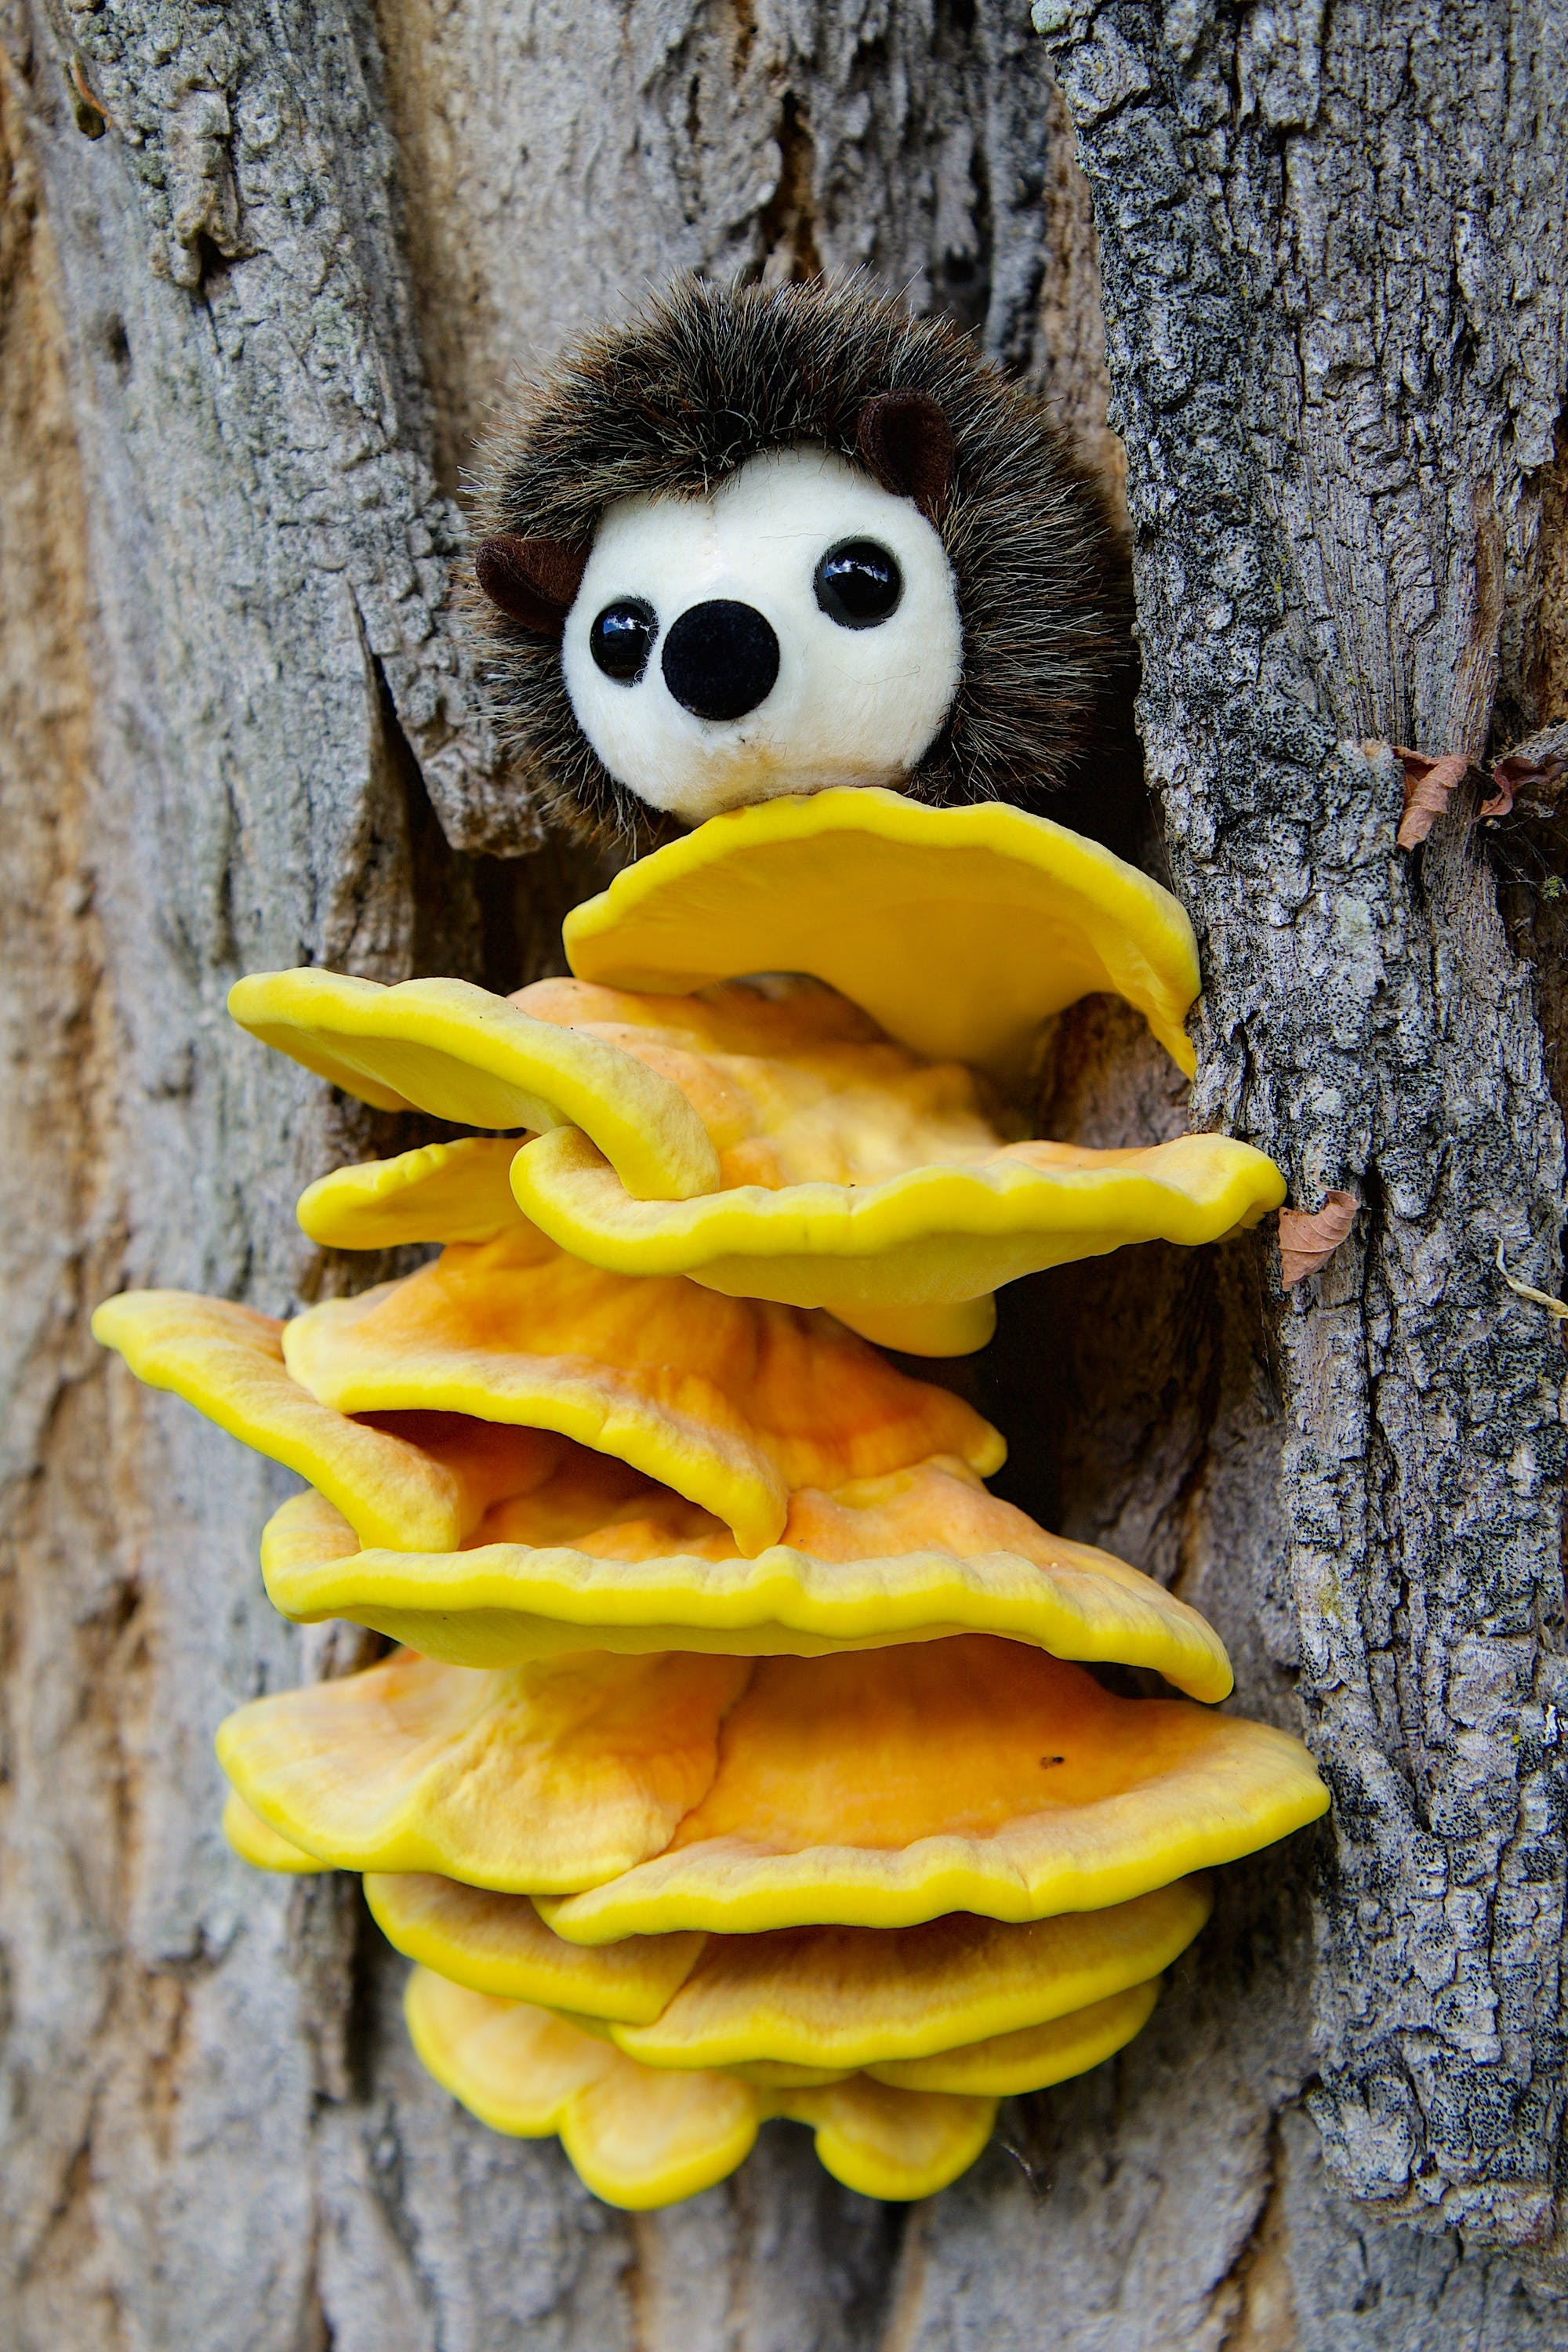 White Plush Toy on Top of Yellow Mushroom